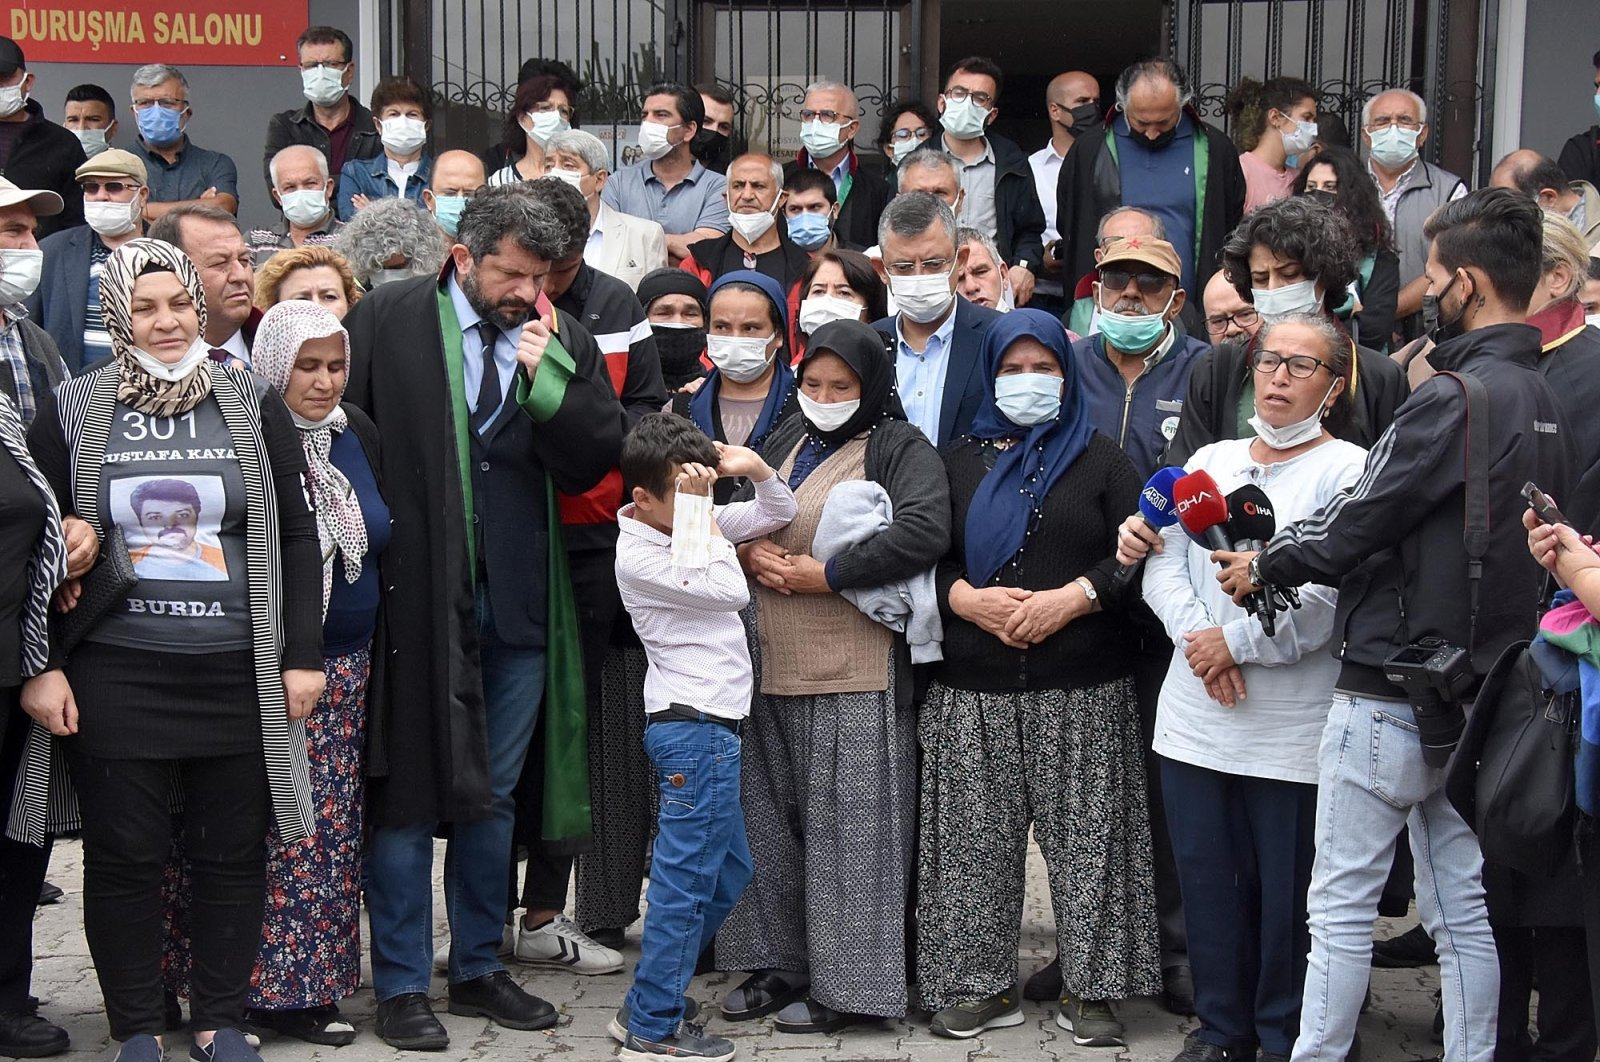 Families of the victims, lawyers and supporters, including the Republican People's Party (CHP) Group Deputy Chairperson Özgür Özel (C), make statements in front of a court in Akhisar, western Manisa province, Turkey, June 16, 2021. (DHA Photo)